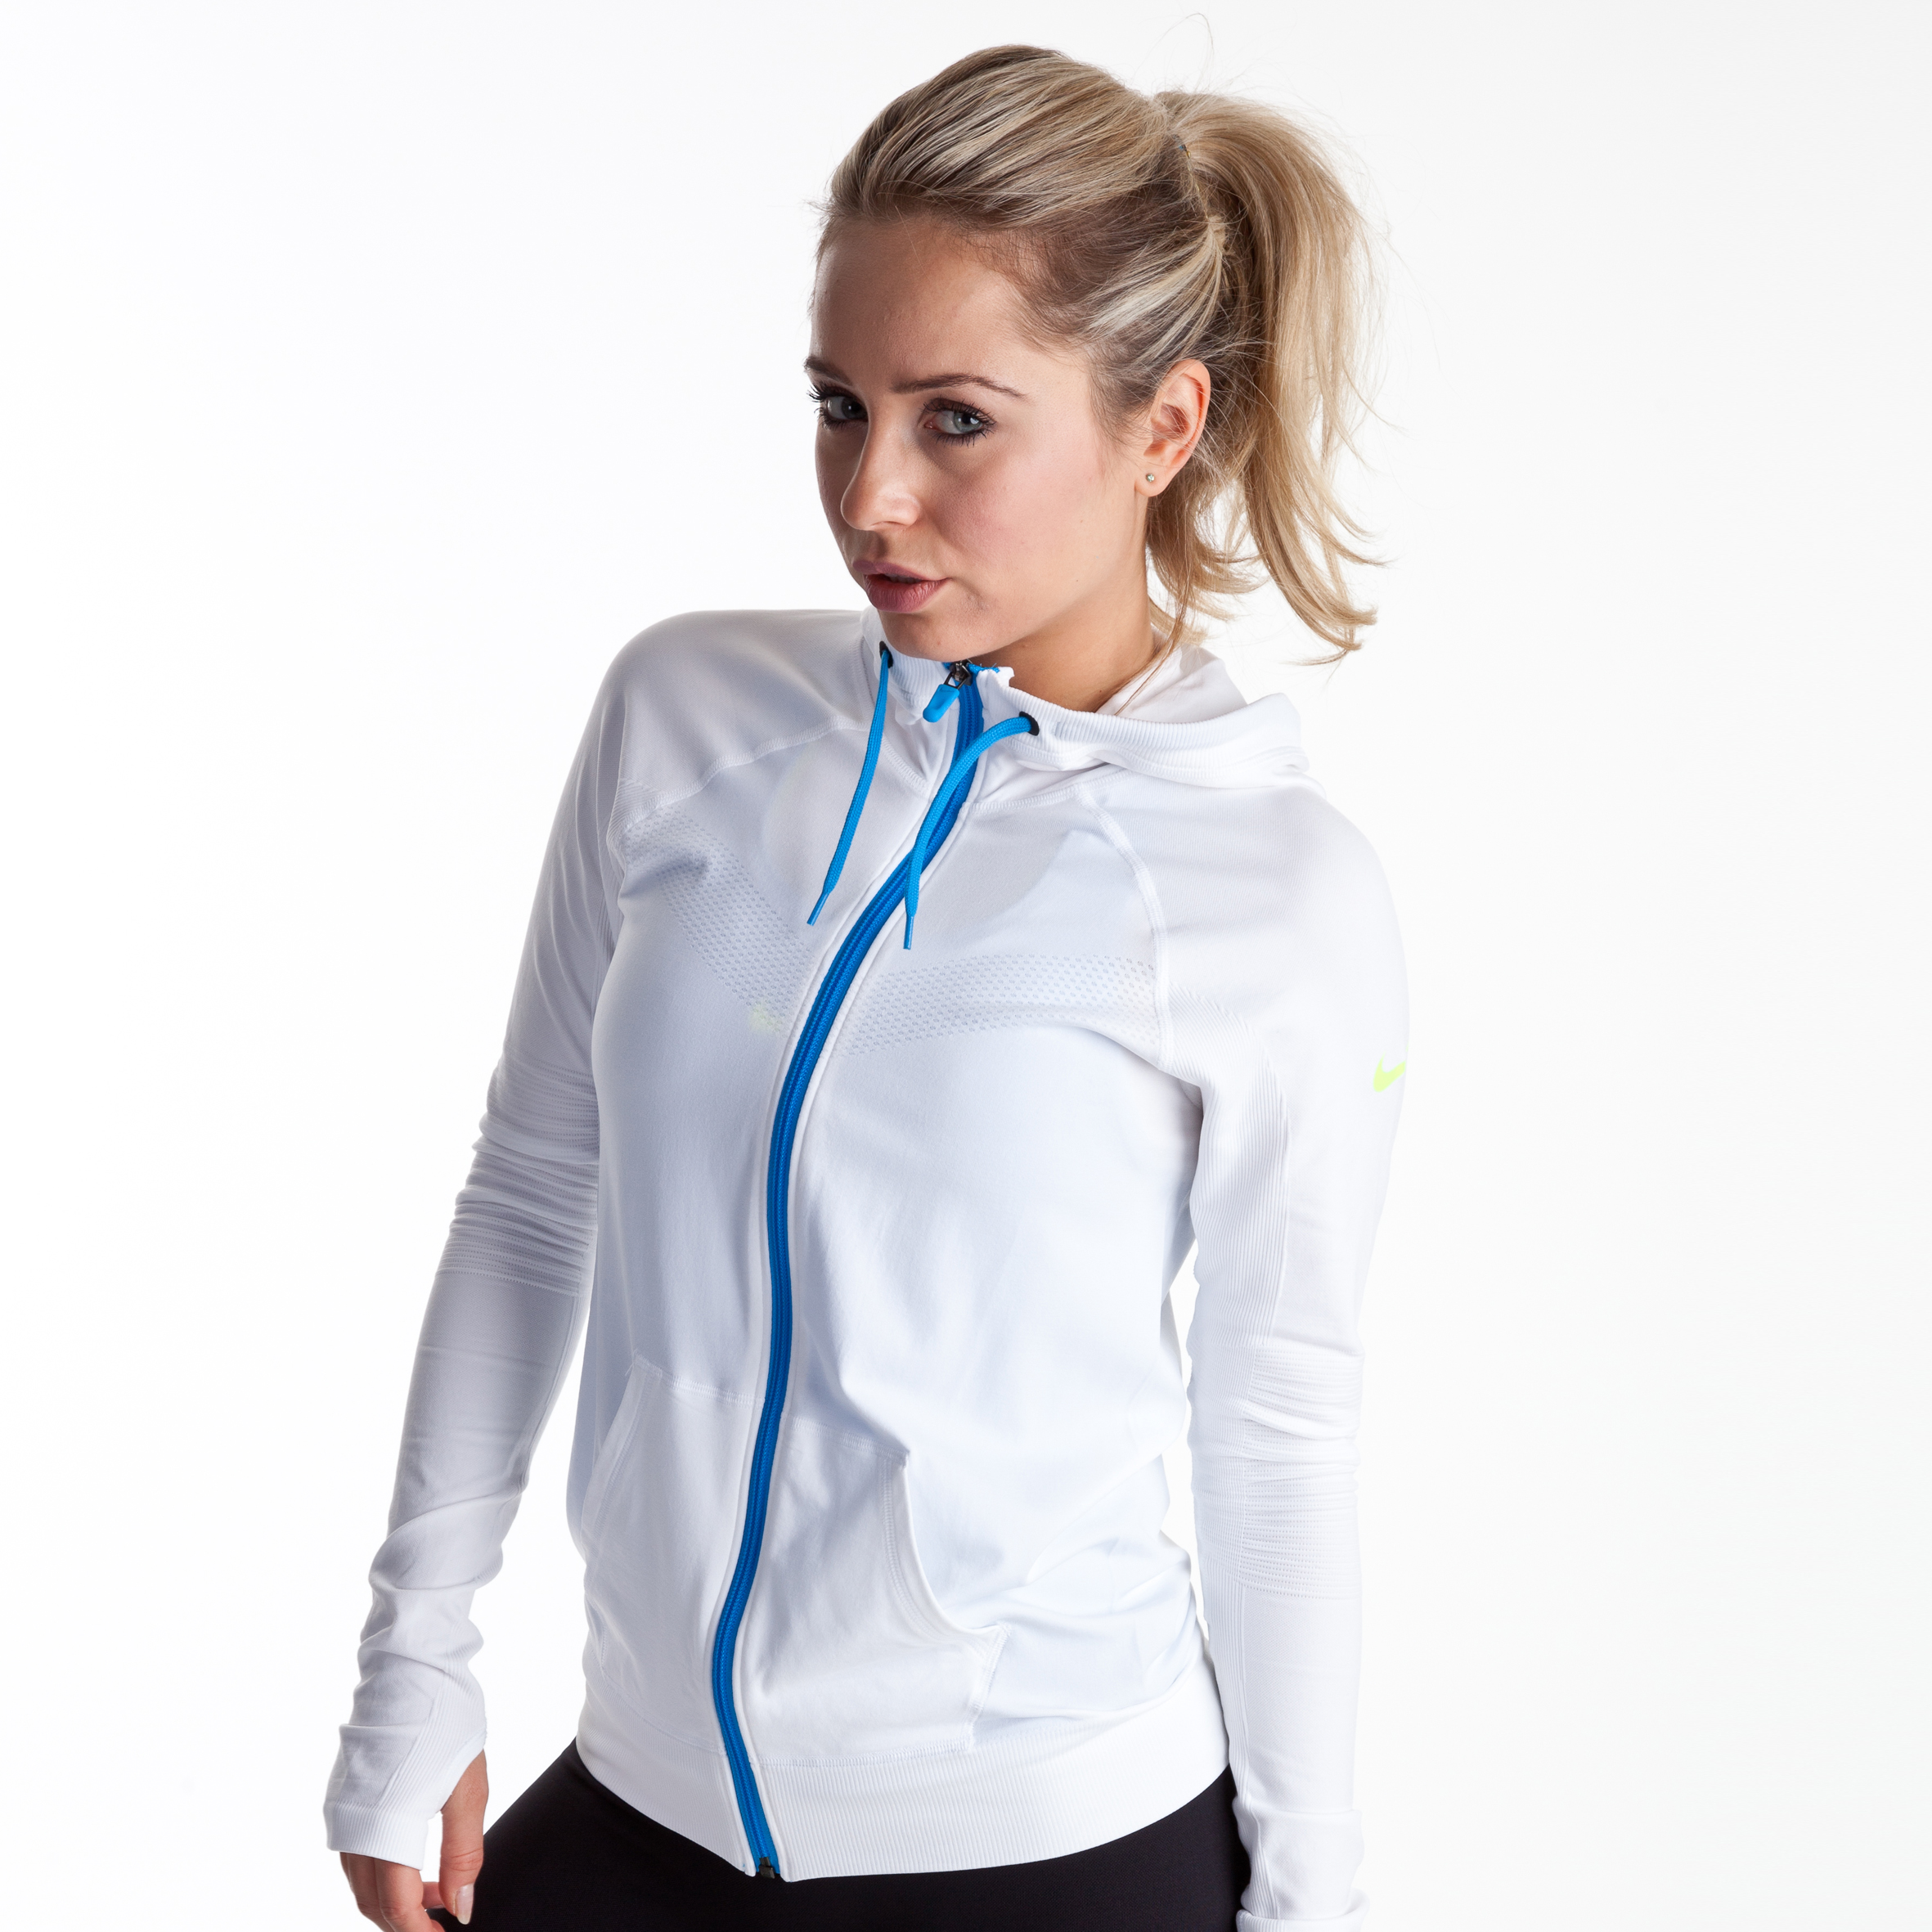 Nike Limitless Jacket - White/Volt - Womens